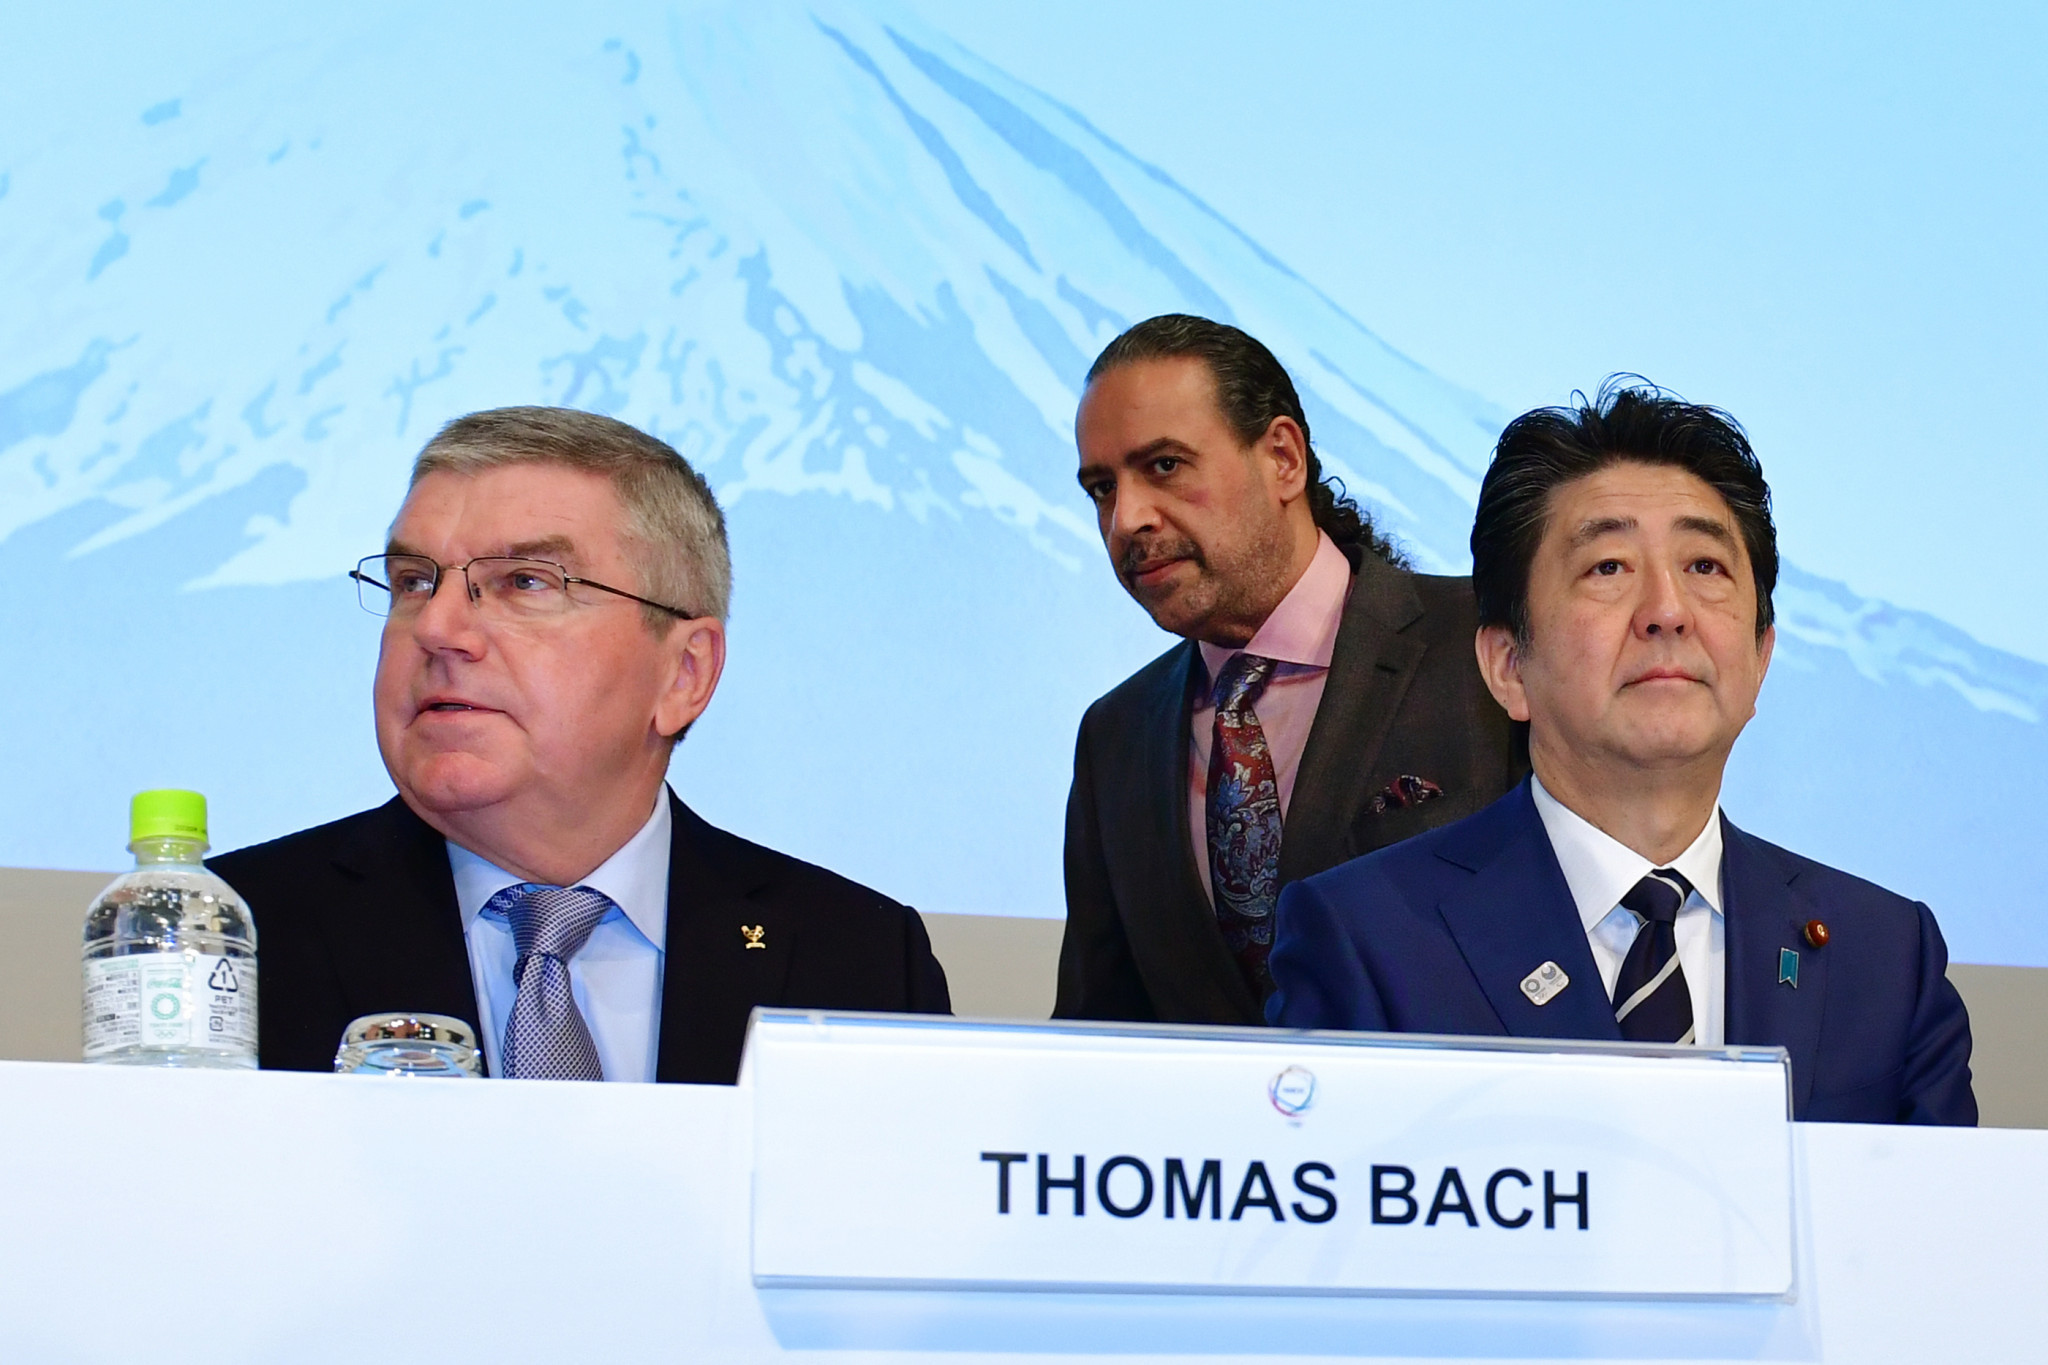 IOC President Thomas Bach personally asked Sheikh to temporarily stand aside as head of the umbrella body last week ©Getty Images